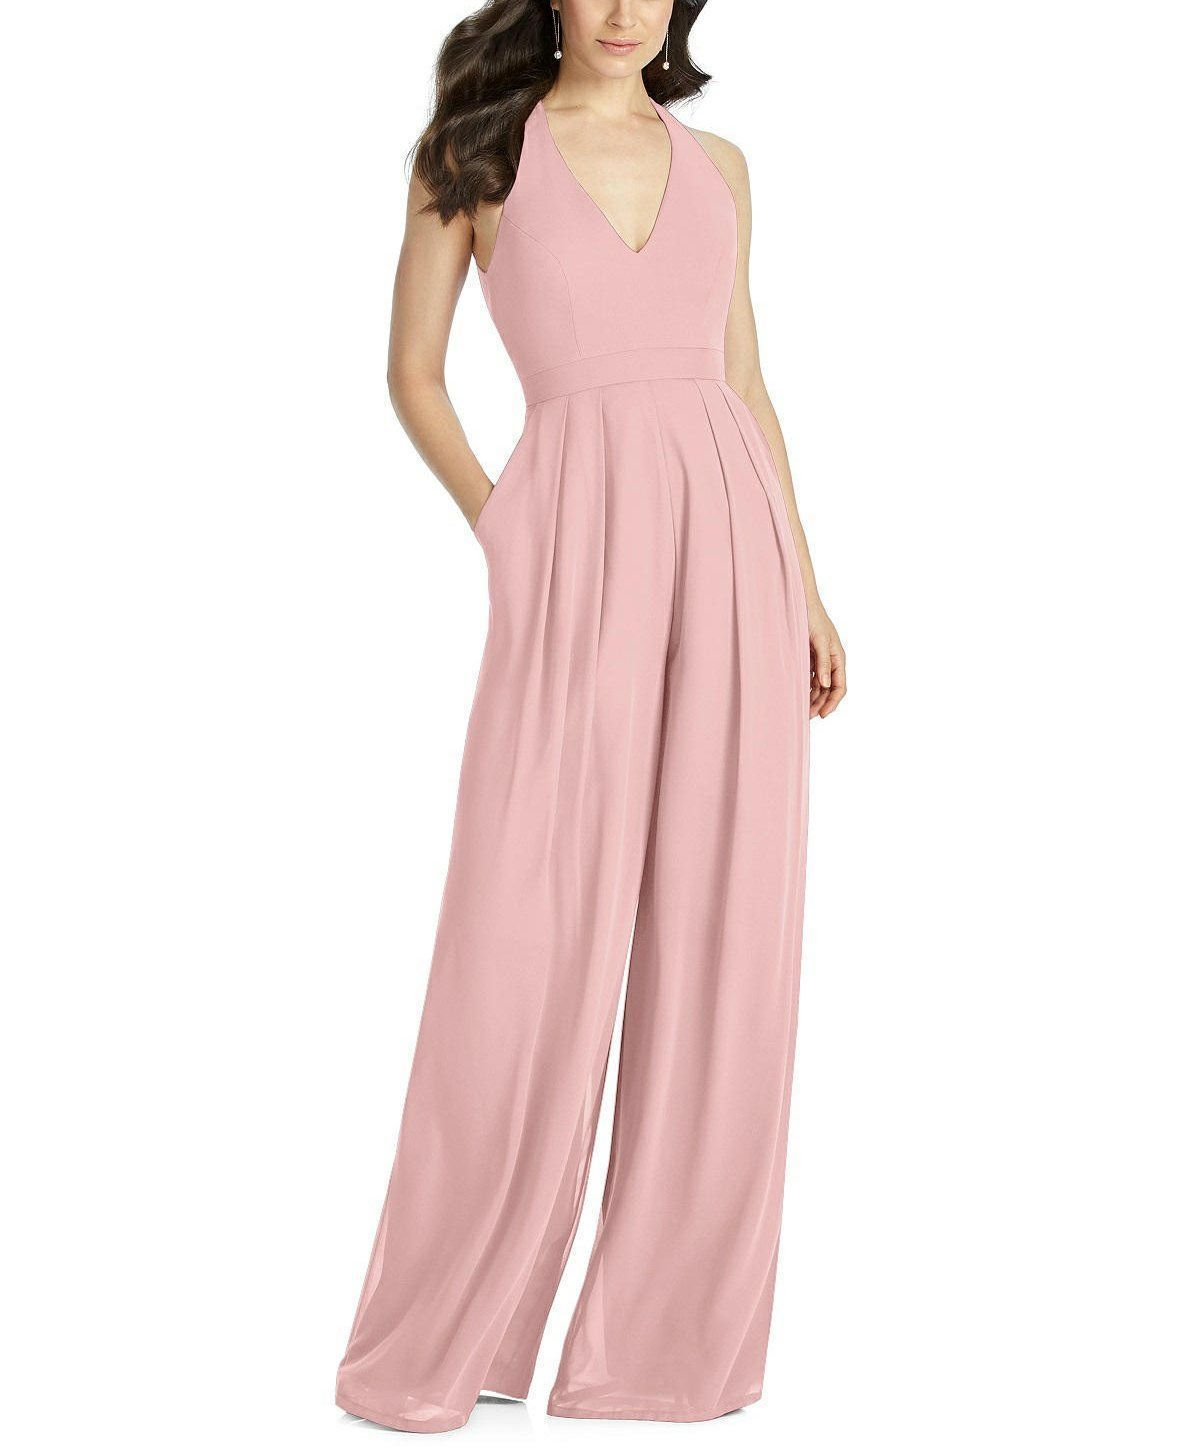 Dessy Bridesmaid Jumpsuit Arielle #bridesmaidjumpsuits Dessy Bridesmaid Jumpsuit Arielle Bridesmaid Dress | Brideside- Color: Pantone Rose Quartz #bridesmaidjumpsuits Dessy Bridesmaid Jumpsuit Arielle #bridesmaidjumpsuits Dessy Bridesmaid Jumpsuit Arielle Bridesmaid Dress | Brideside- Color: Pantone Rose Quartz #bridesmaidjumpsuits Dessy Bridesmaid Jumpsuit Arielle #bridesmaidjumpsuits Dessy Bridesmaid Jumpsuit Arielle Bridesmaid Dress | Brideside- Color: Pantone Rose Quartz #bridesmaidjumpsuits #bridesmaidjumpsuits